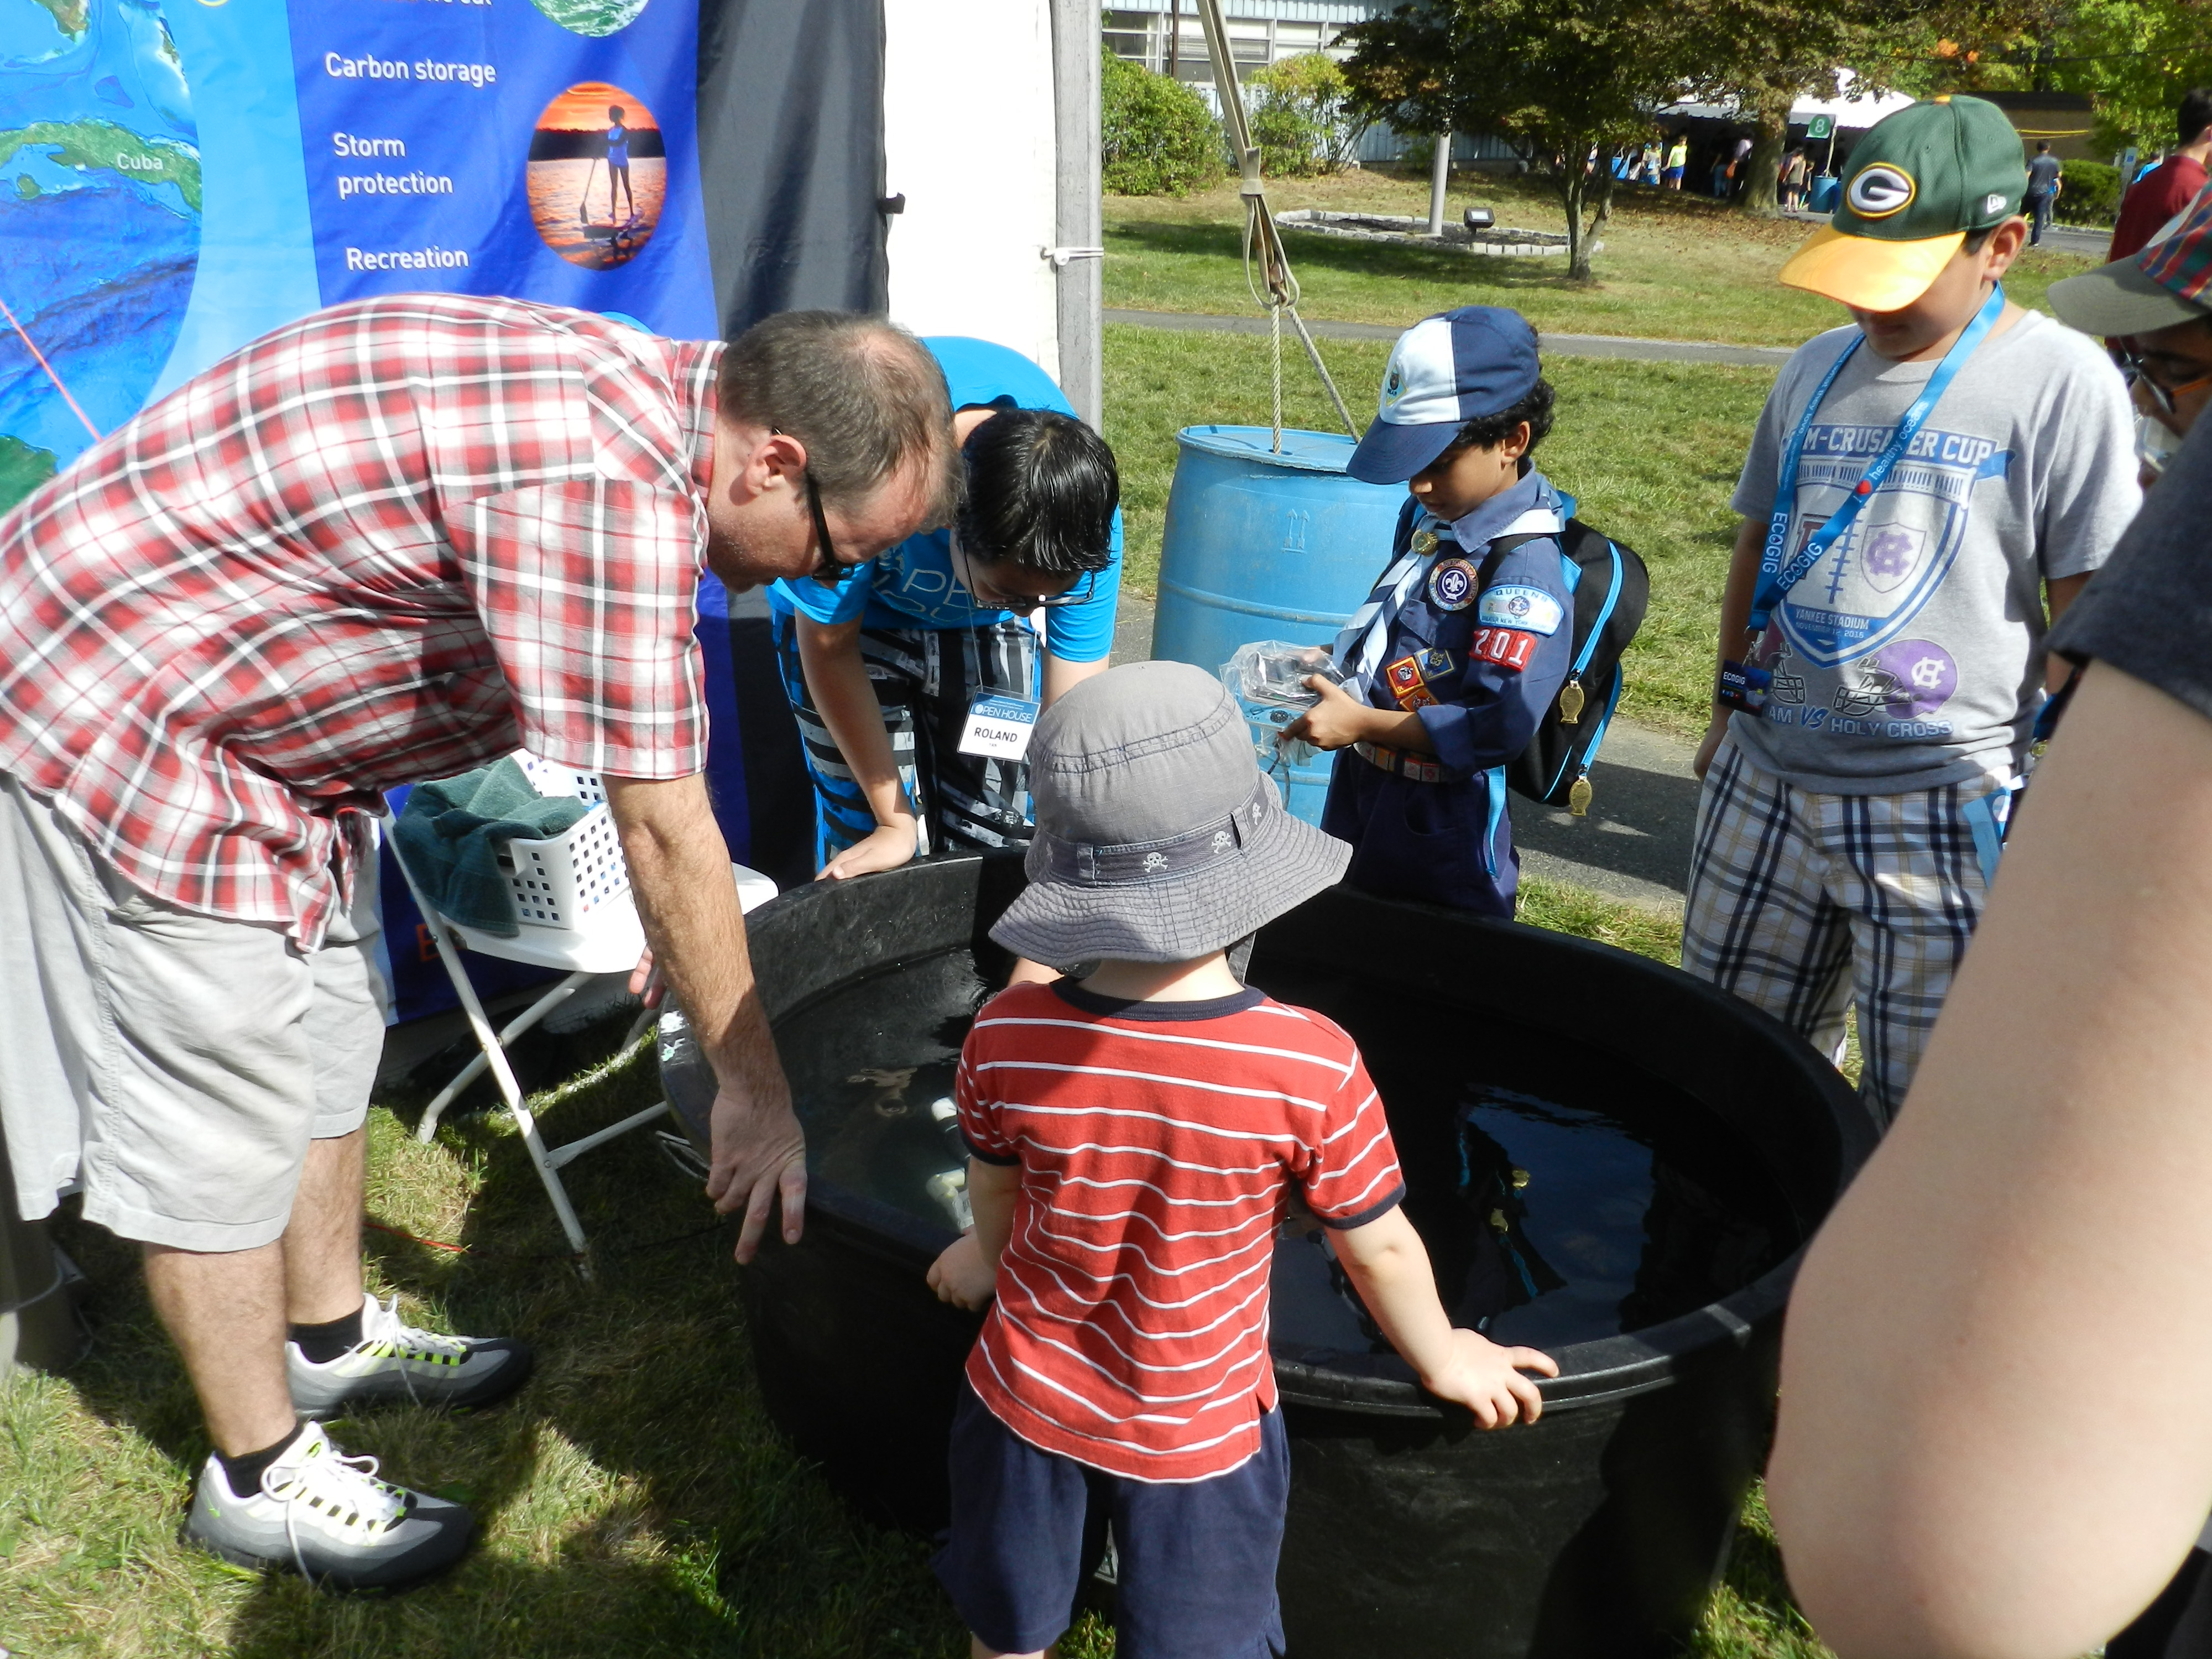 <div style='color:#000000;'><br /><br /><h2>2017 LDEO Open House. ECOGIG researchers set up the Ocean Discovery Zone for visitors to the Lamont-Doherty Earth Observatory annual open house. Visitors drove ROVs (remotely operated vehicles) and built deep sea corals and deep sea tube worms!</h2>Photo courtesy of Andy Juhl (ECOGIG &amp; LDEO)</div>